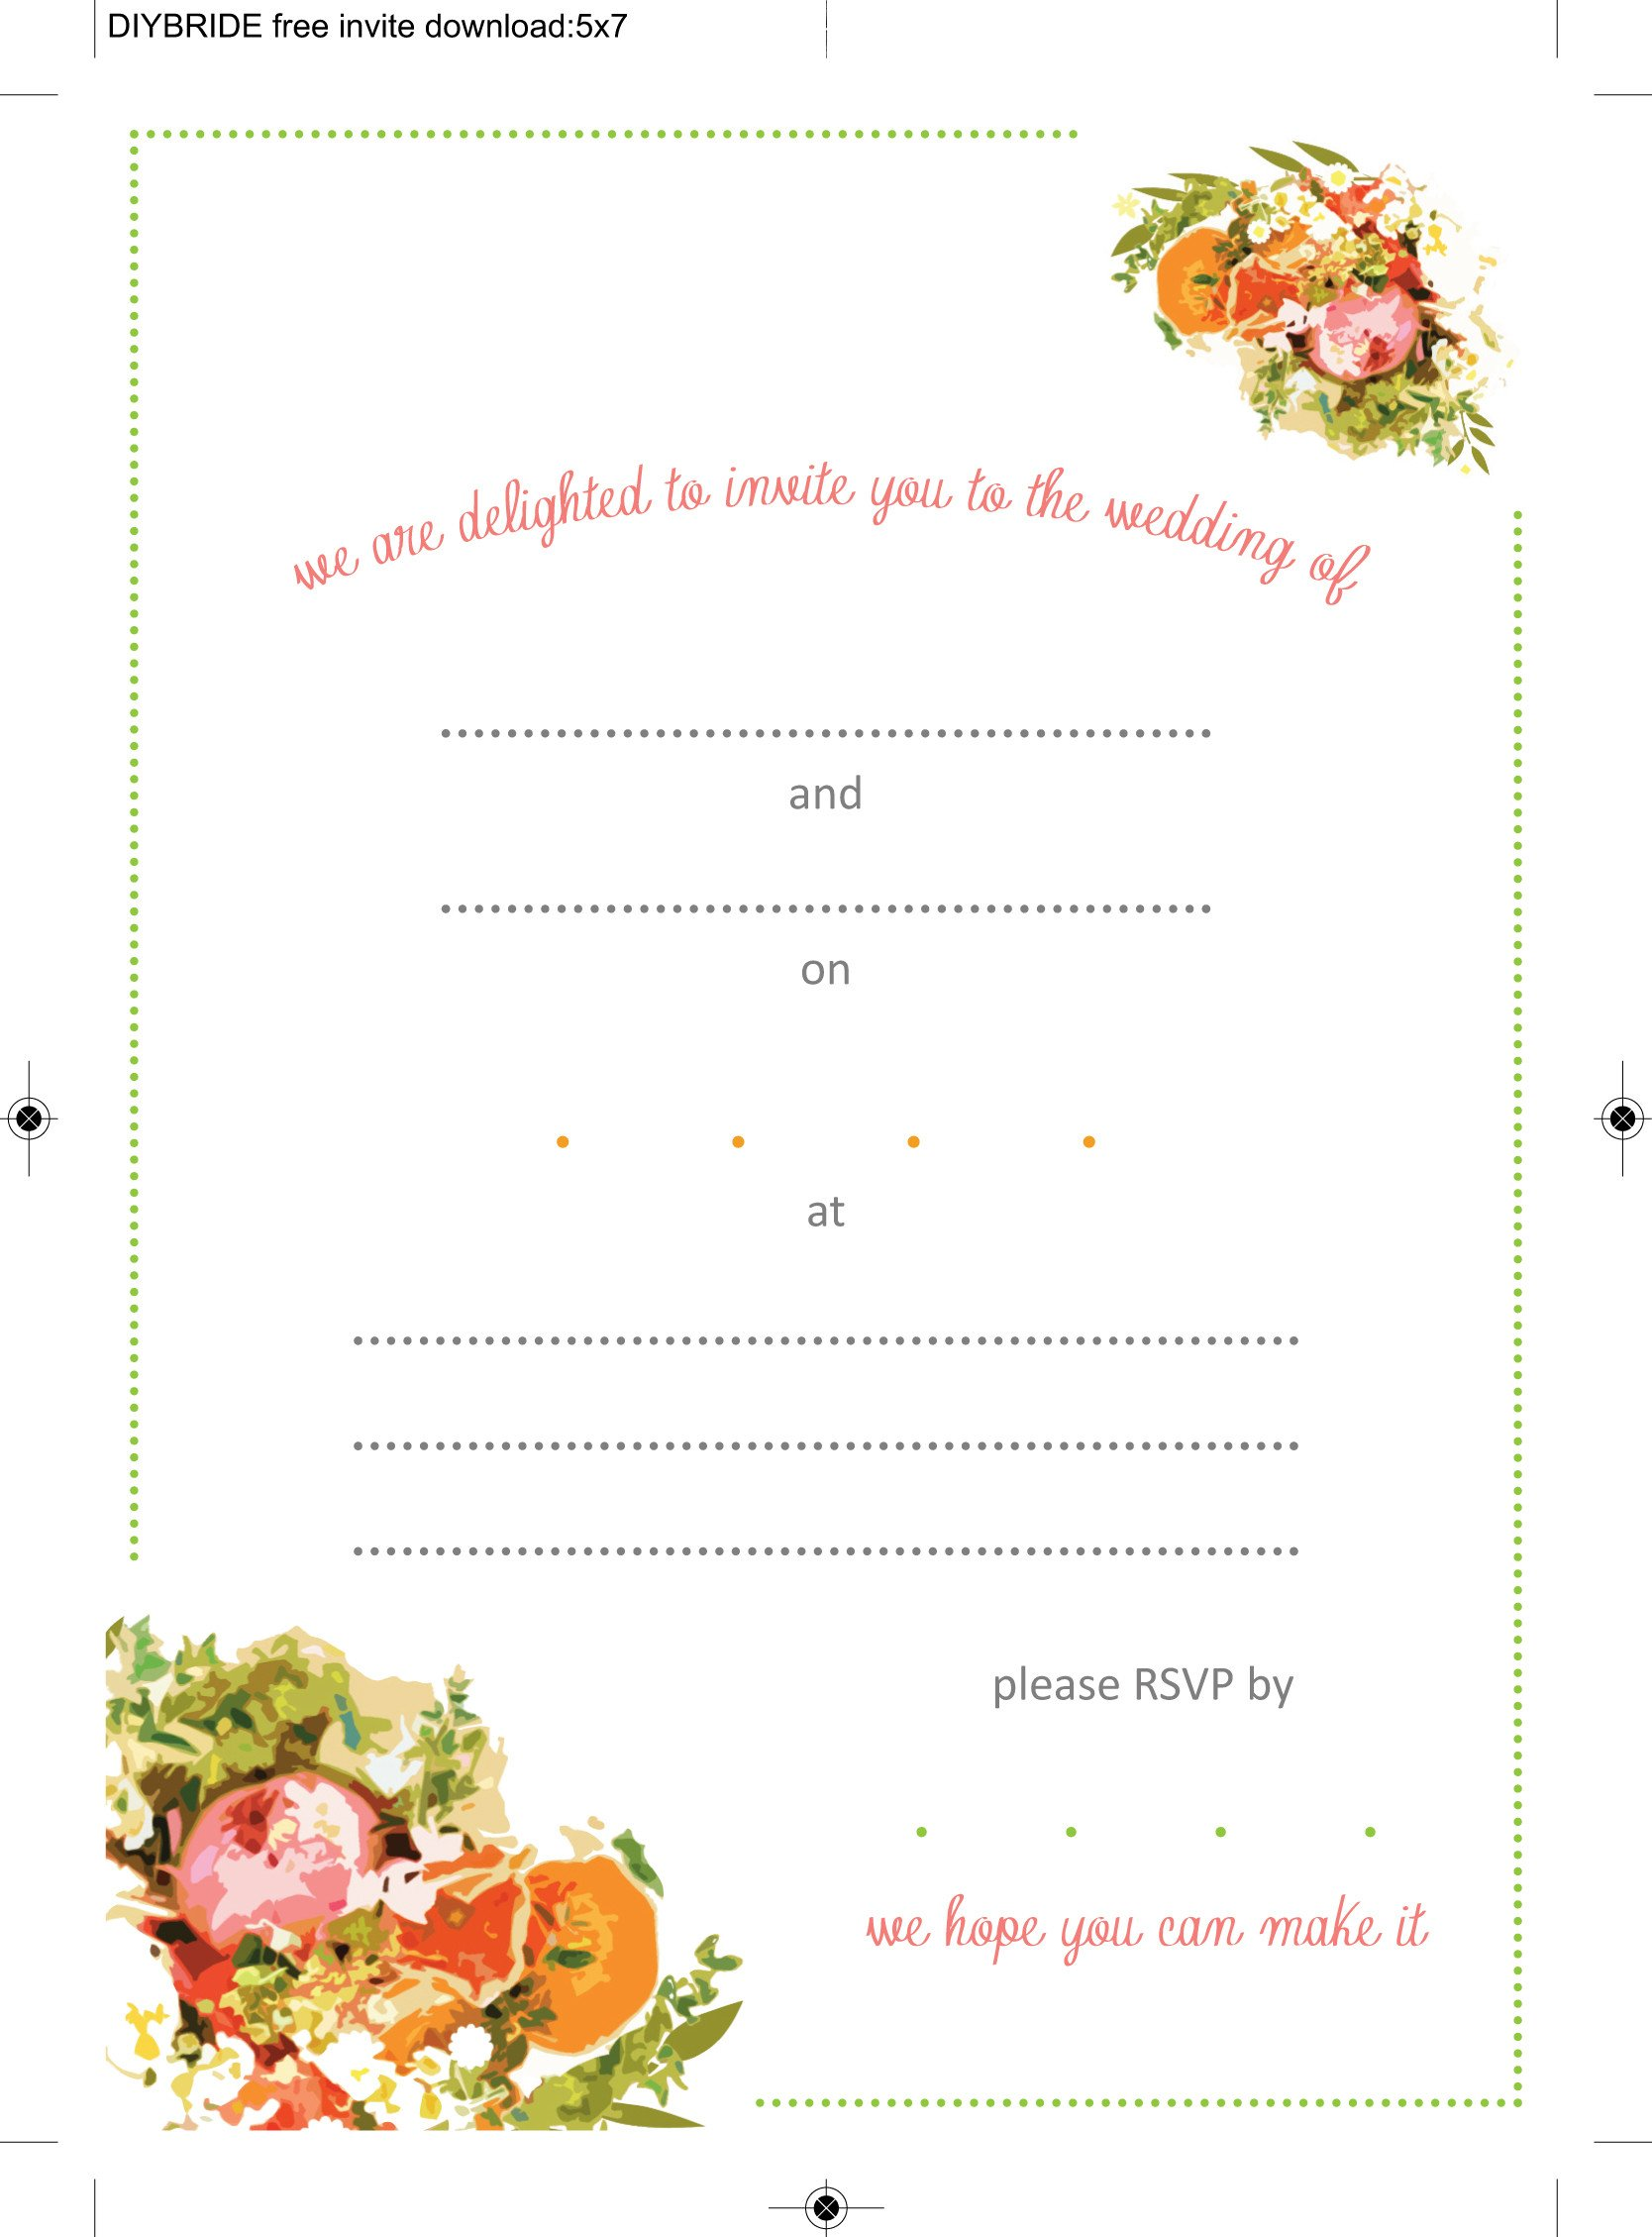 Free Wedding Invitation Template Wedding Invitation Templates that are Cute and Easy to